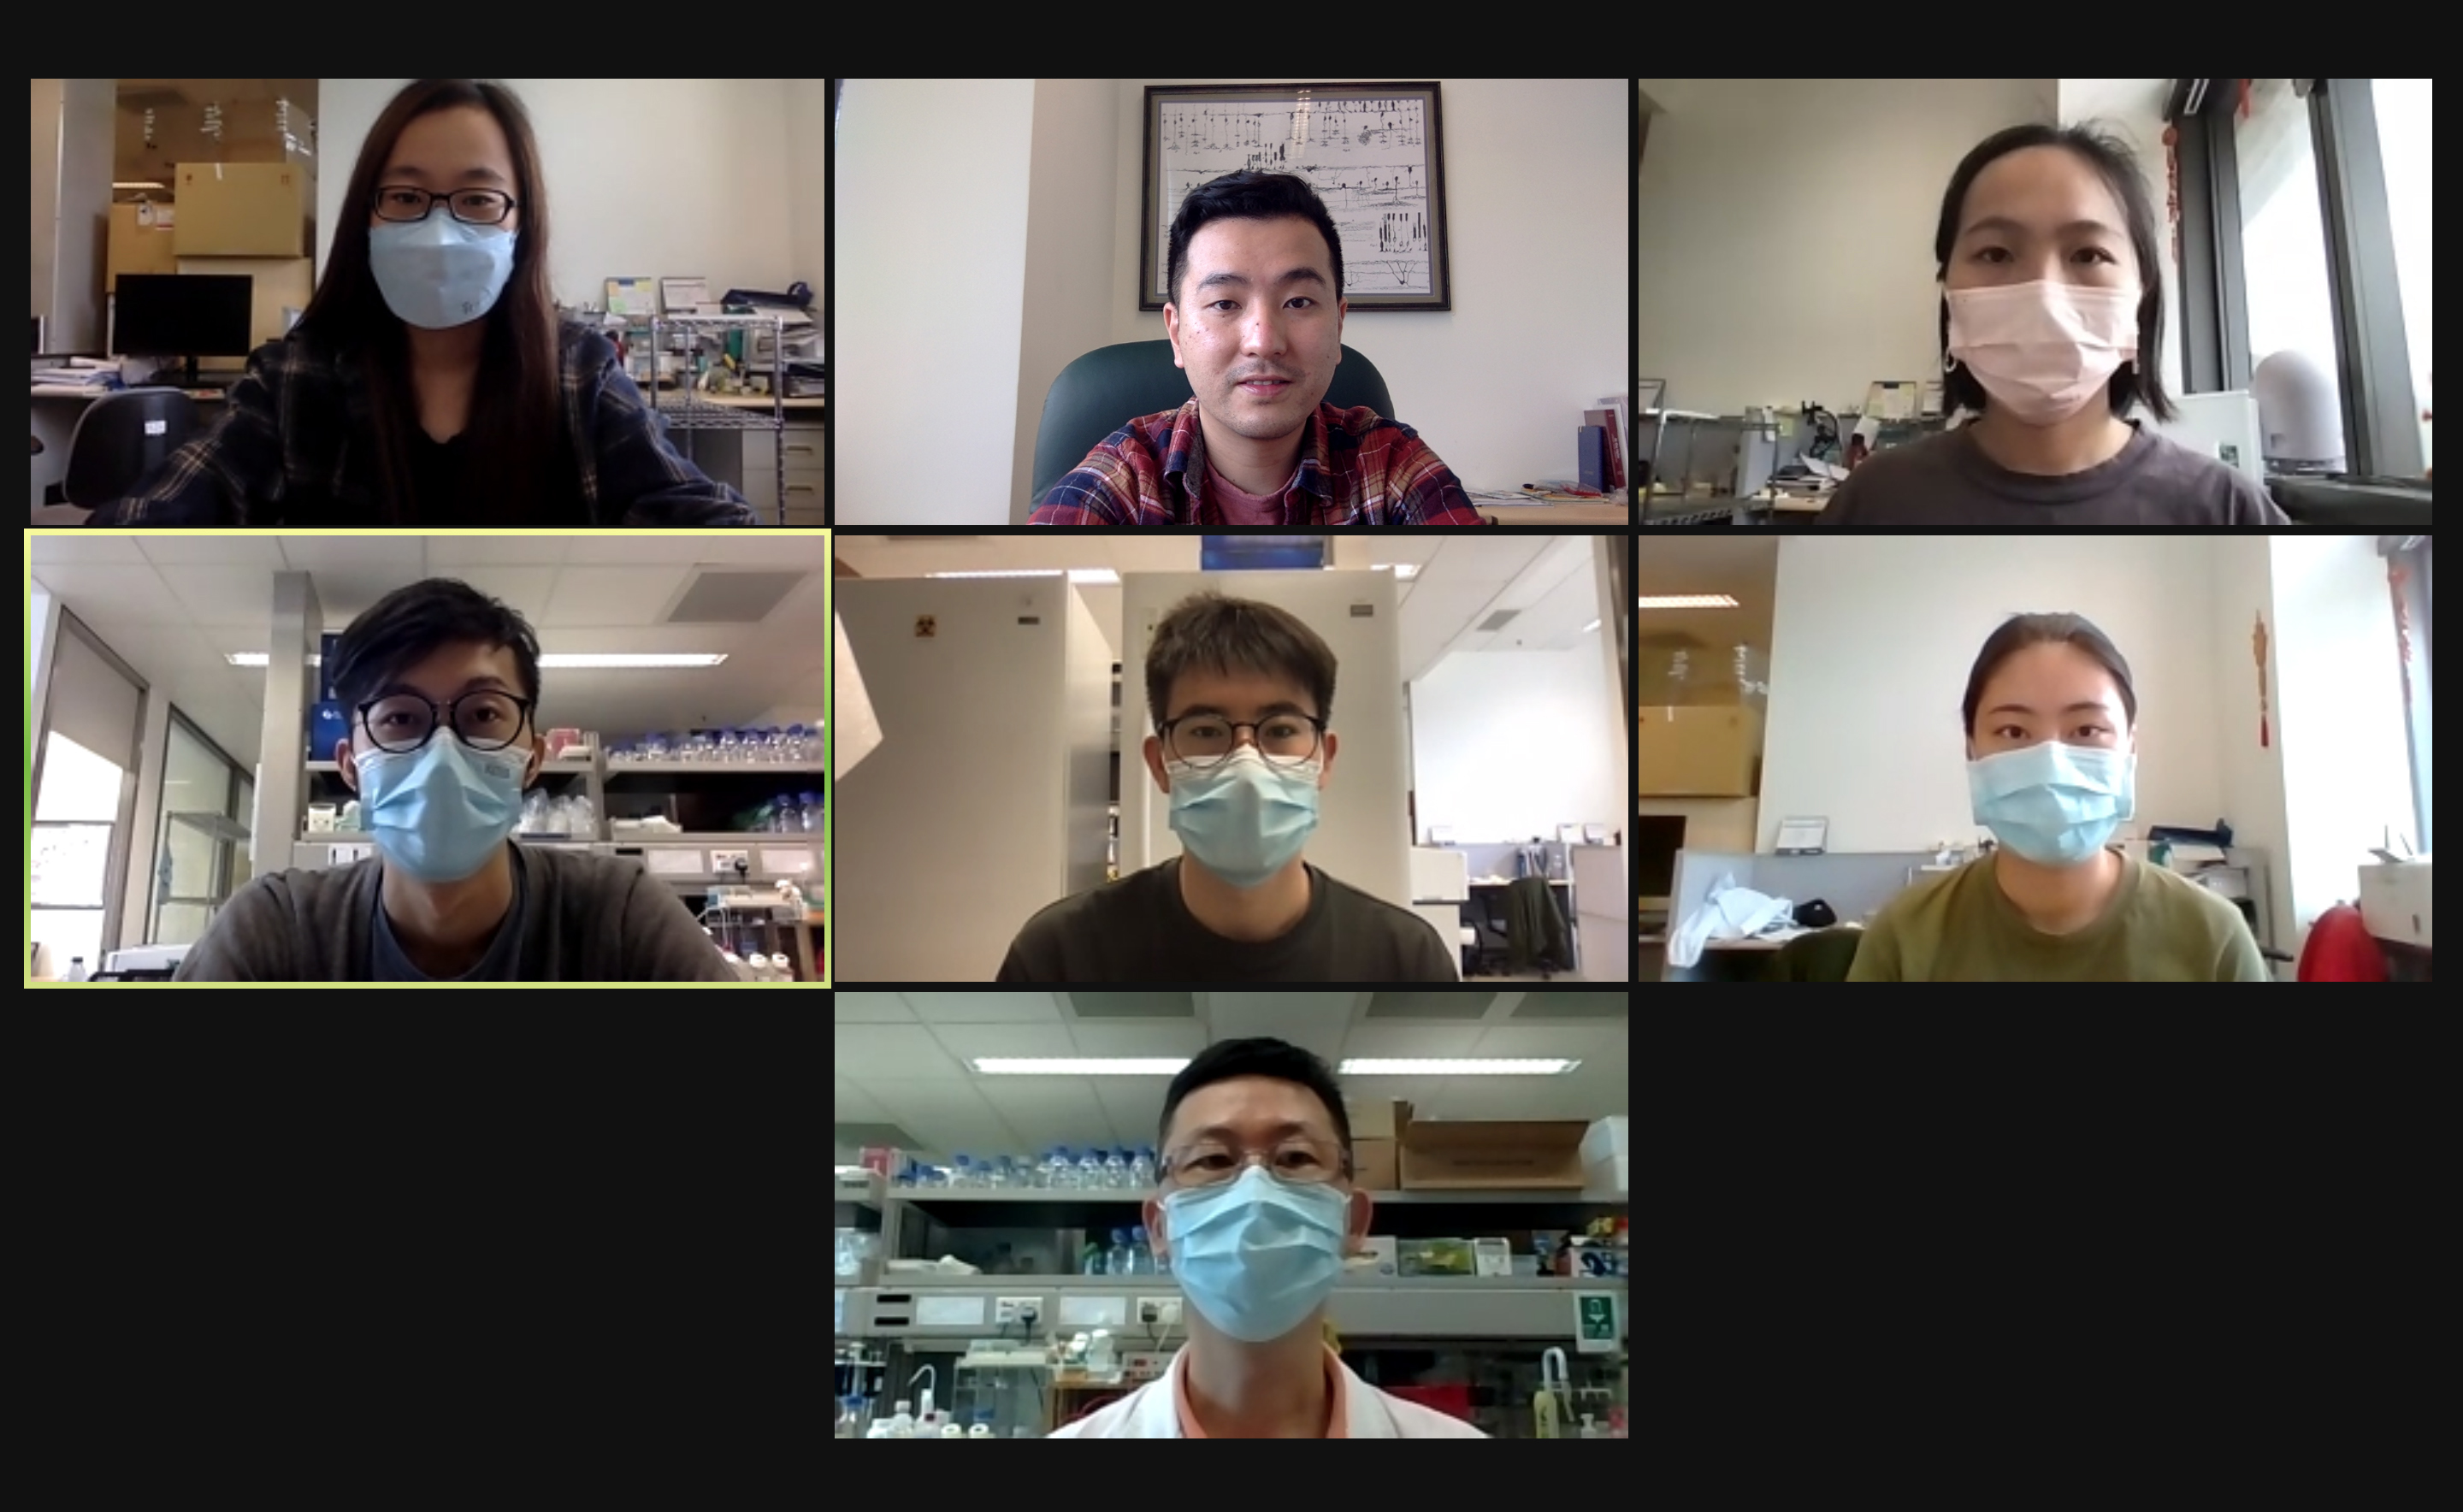 Prof. Ip conducts a zoom discussion with all his laboratory team members.